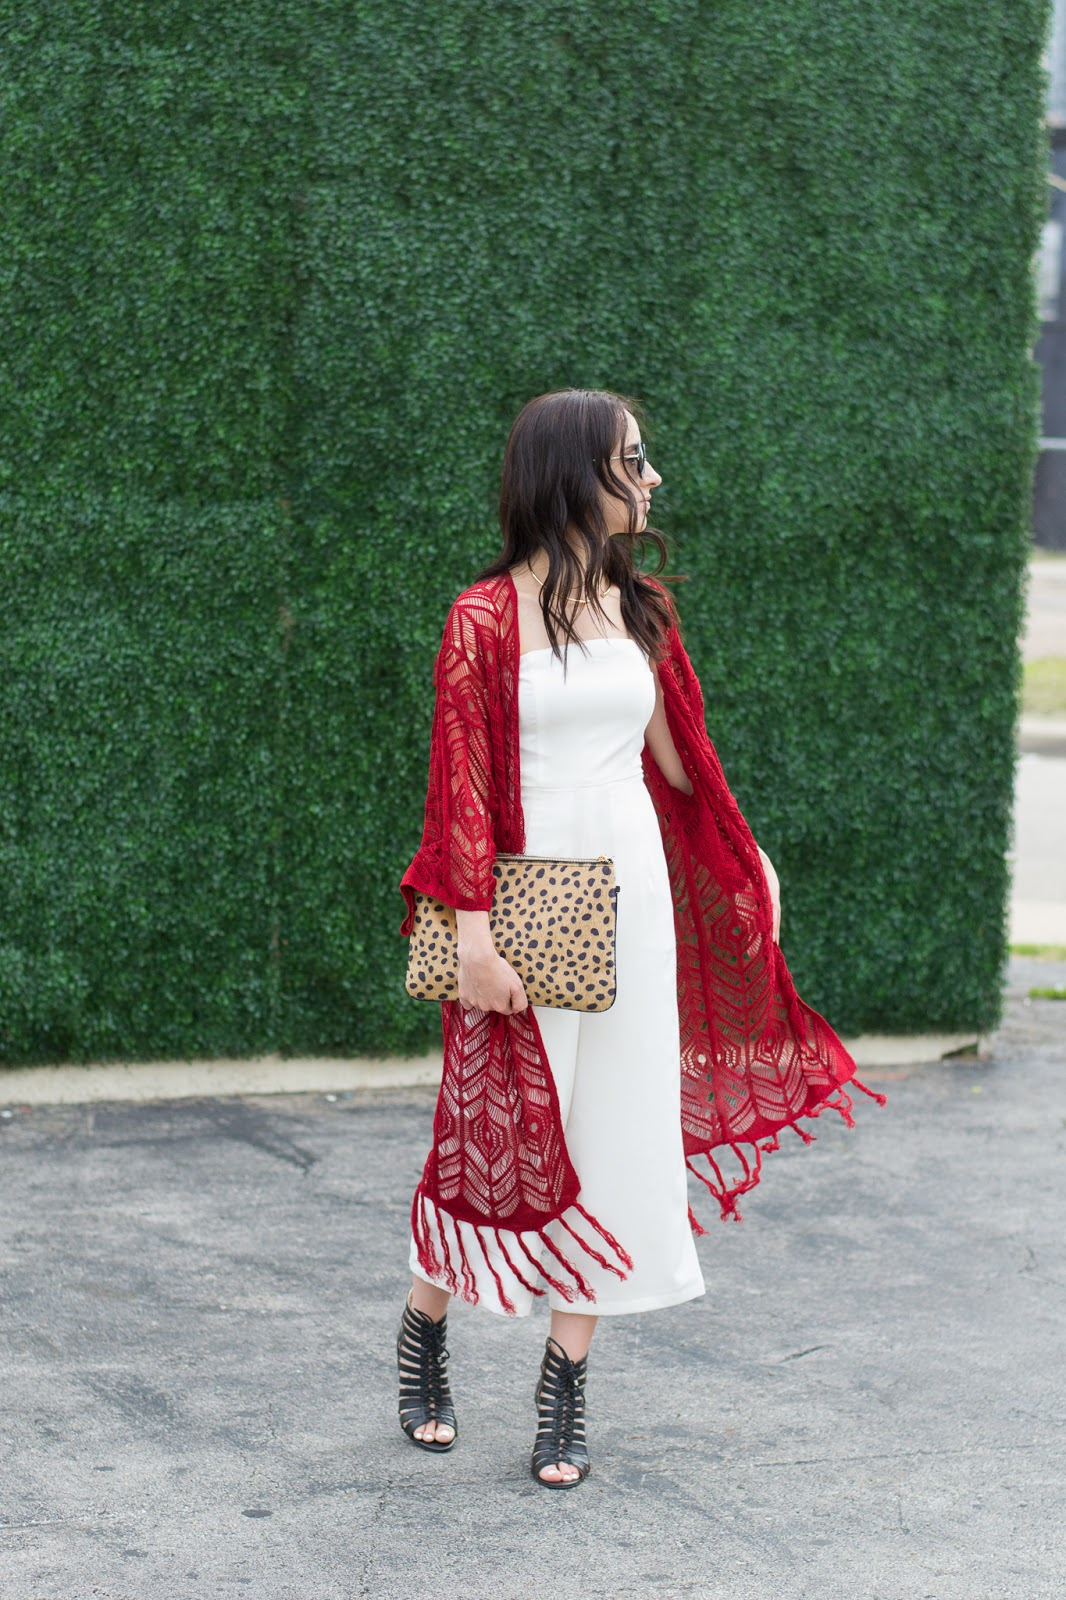 Mixing styles with boho cardigan, chic white jumpsuit, gold accessories and leopard clutch